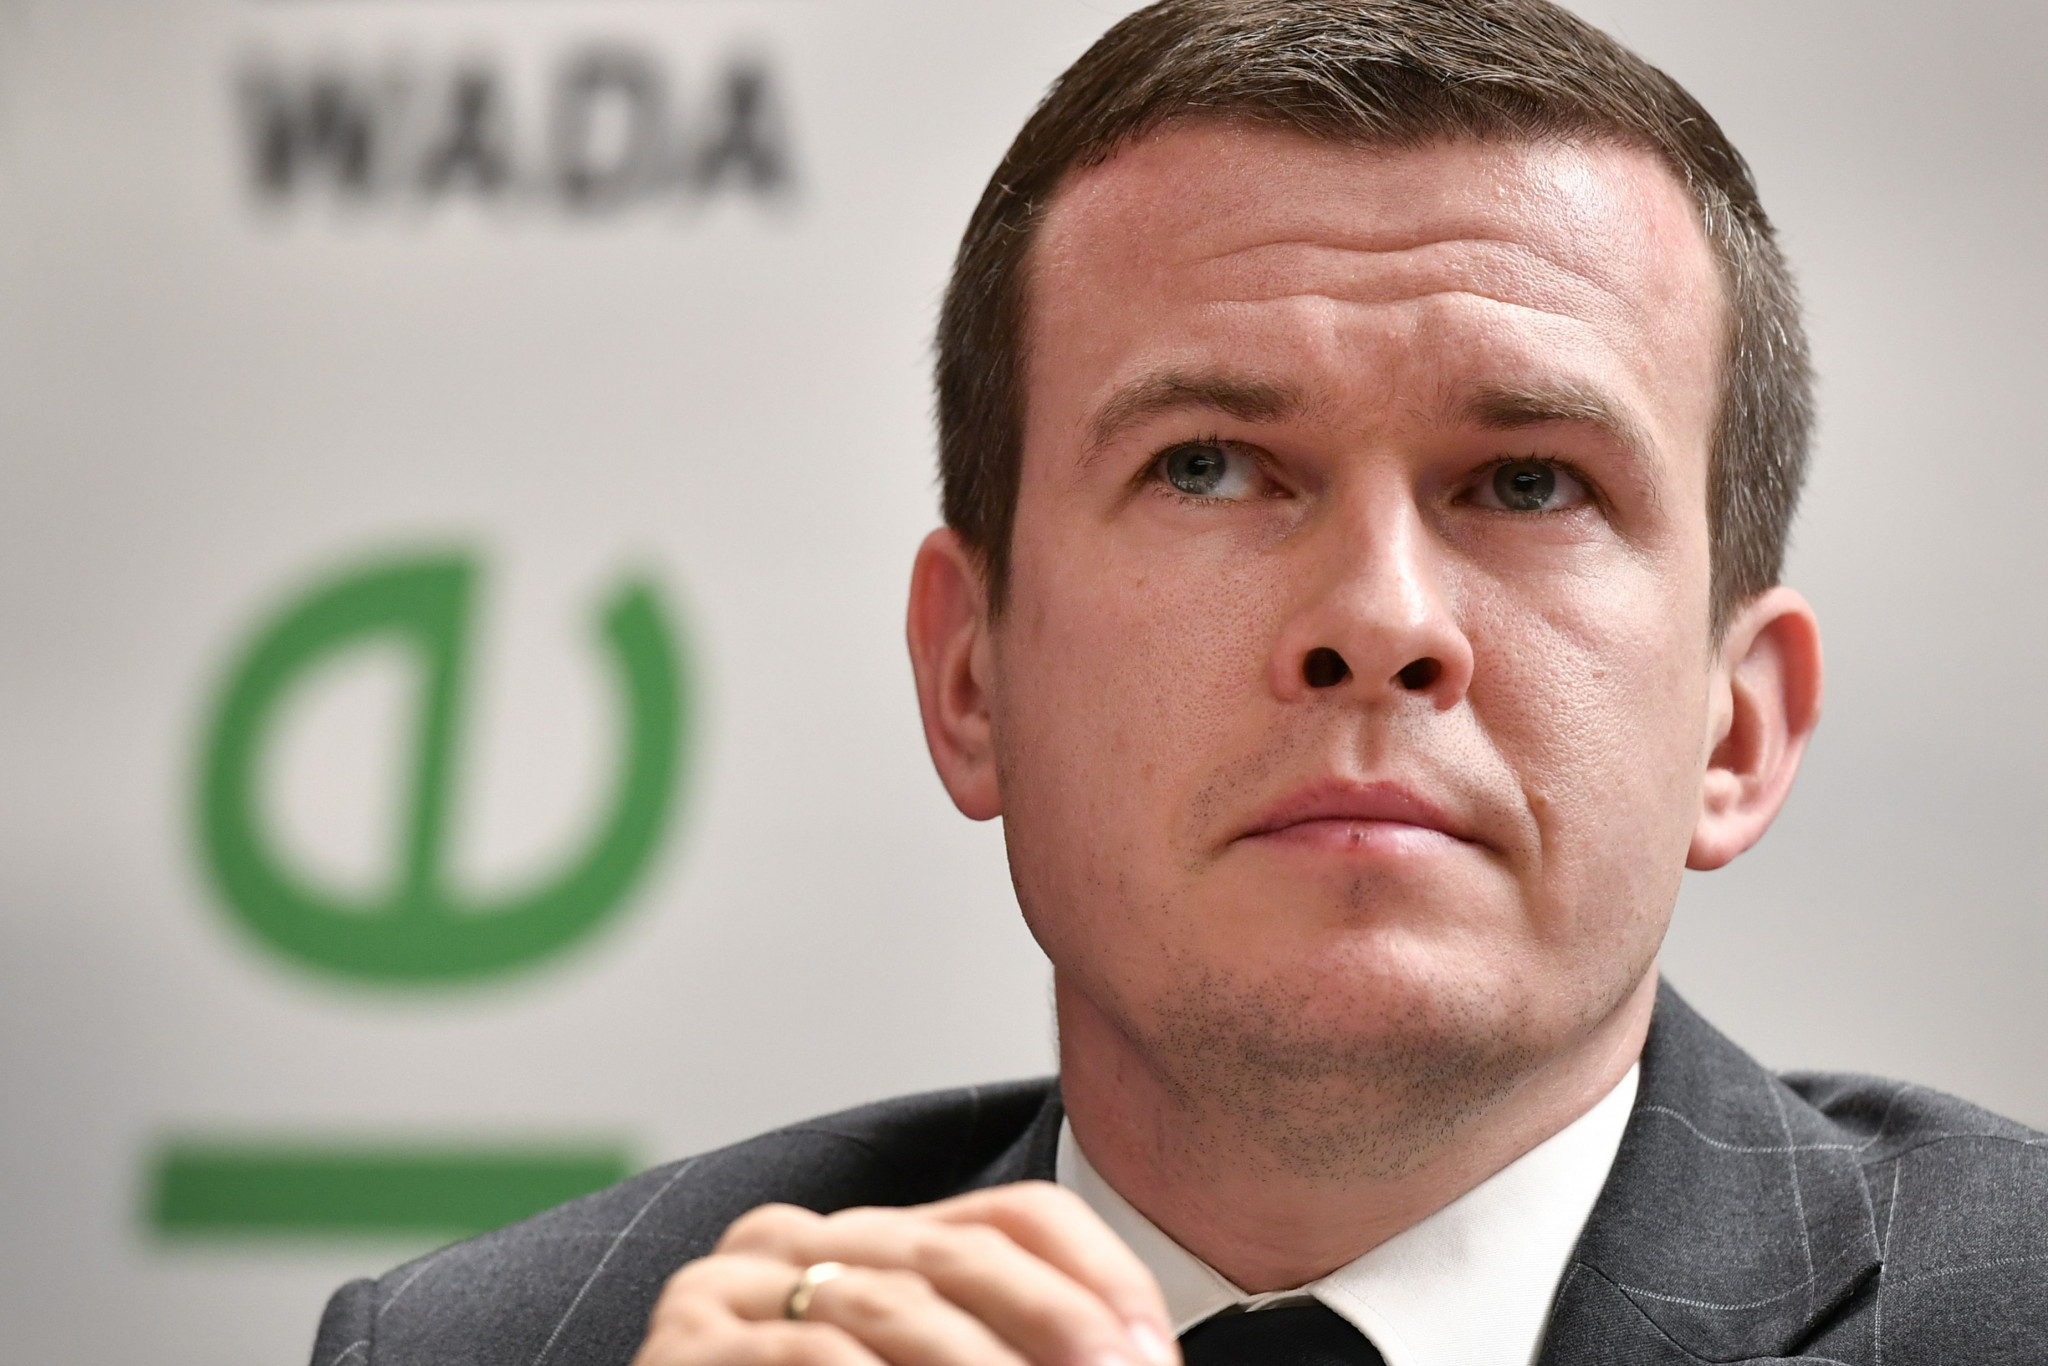 The decision is the first major call made by WADA under new President Witold Bańka ©Getty Images